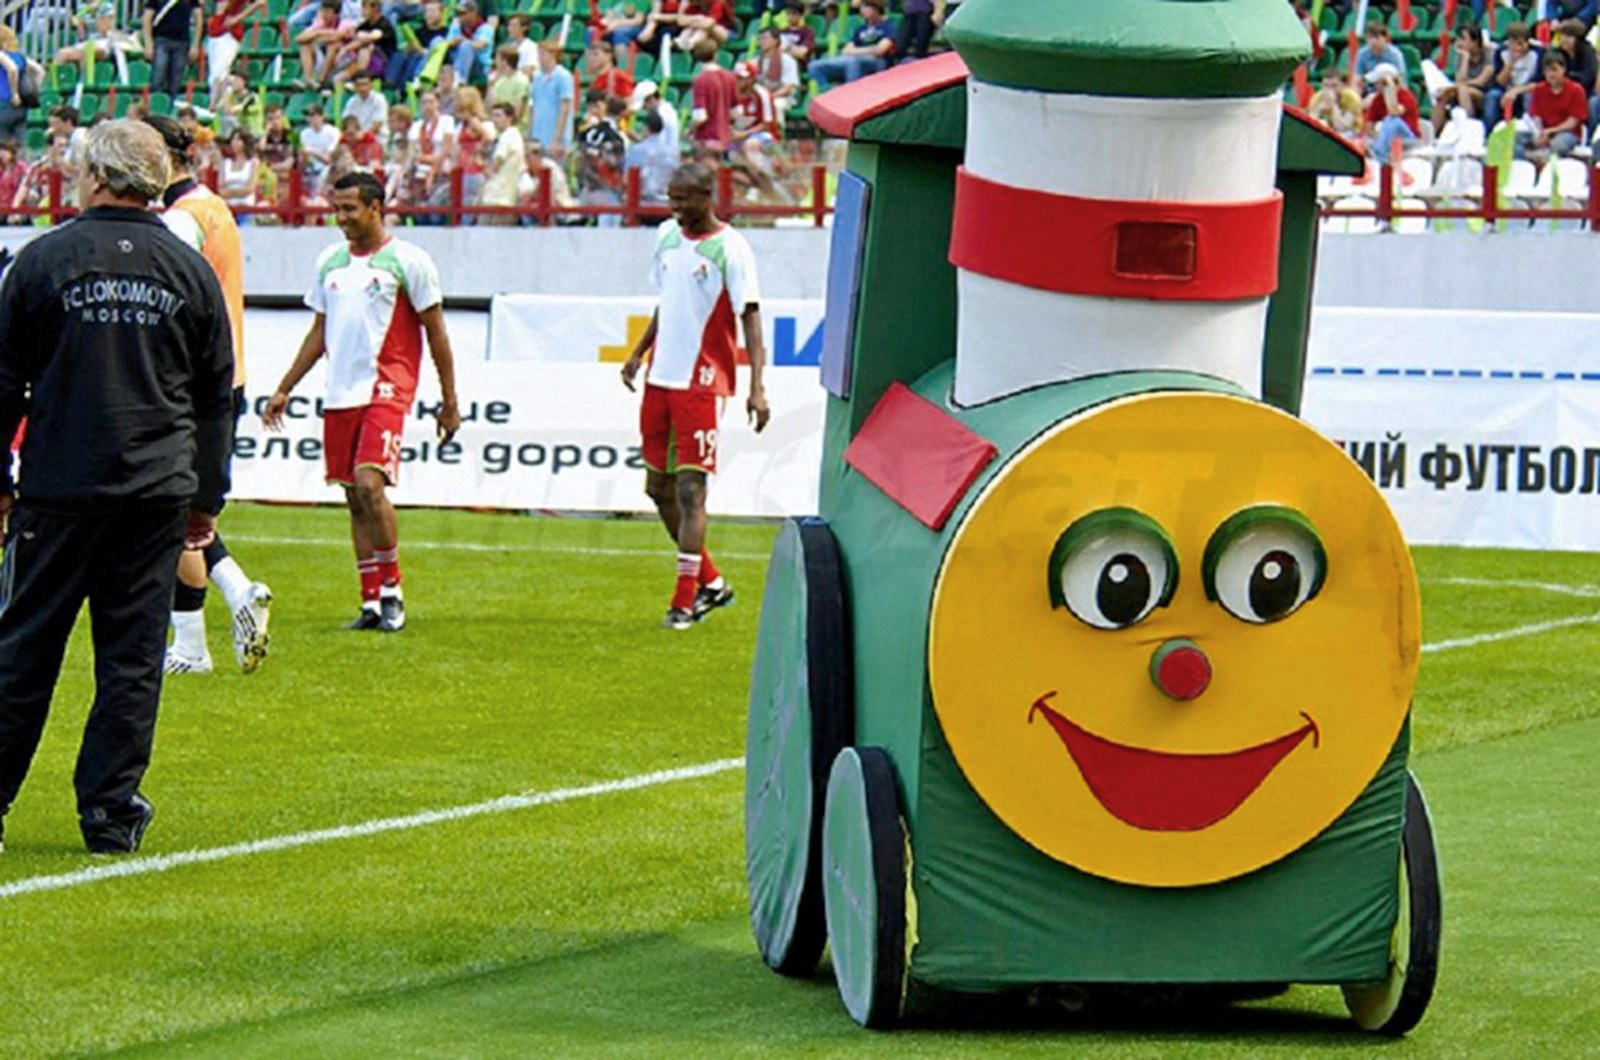 00 FK Lokomotiv mascot on the pitch 221115